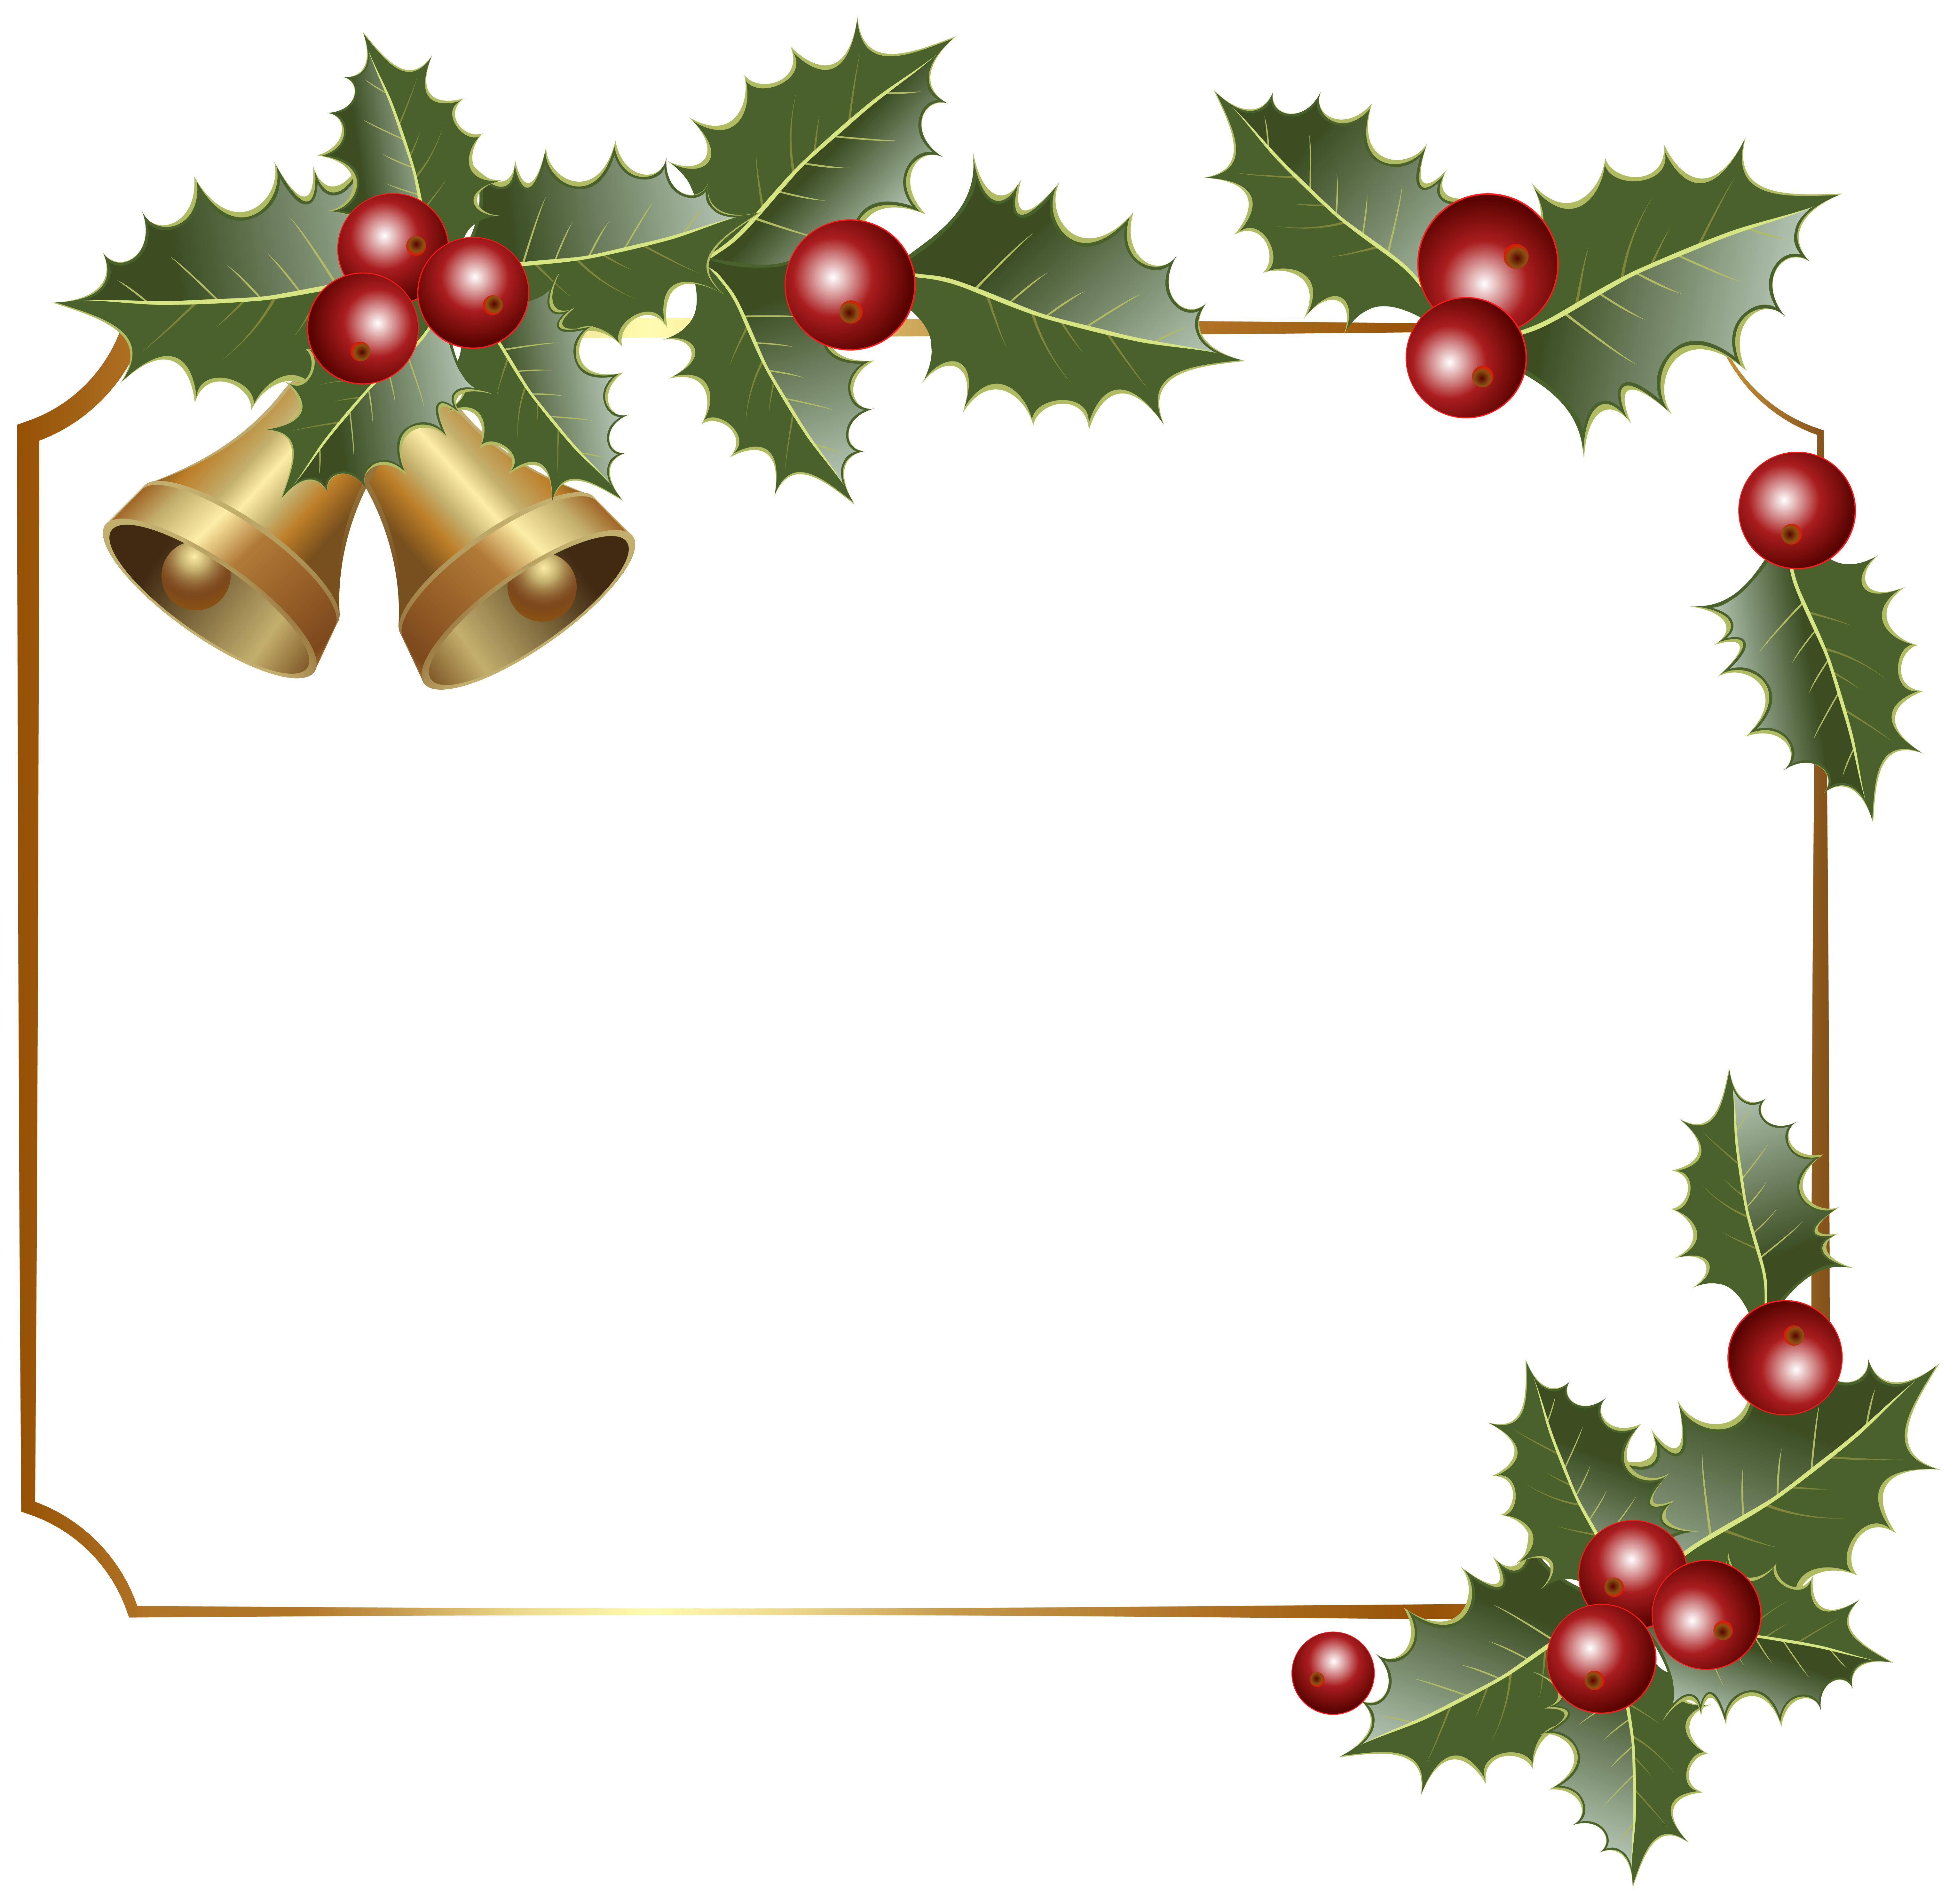 banner free download Decorations crazywidow info. Christmas clipart borders.